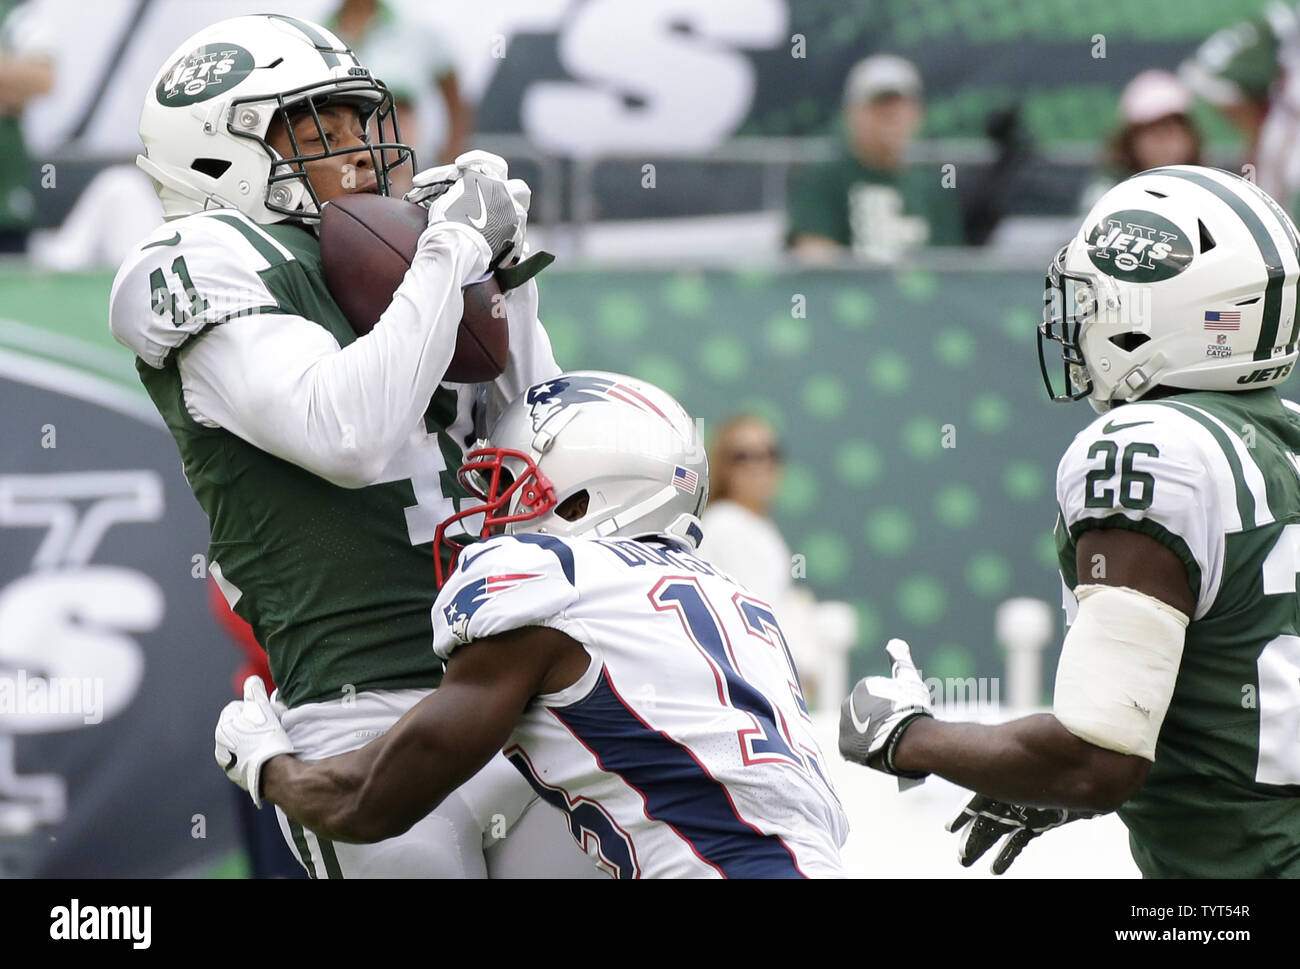 newest c7350 77382 New York Jets Buster Skrine makes an interception in the ...